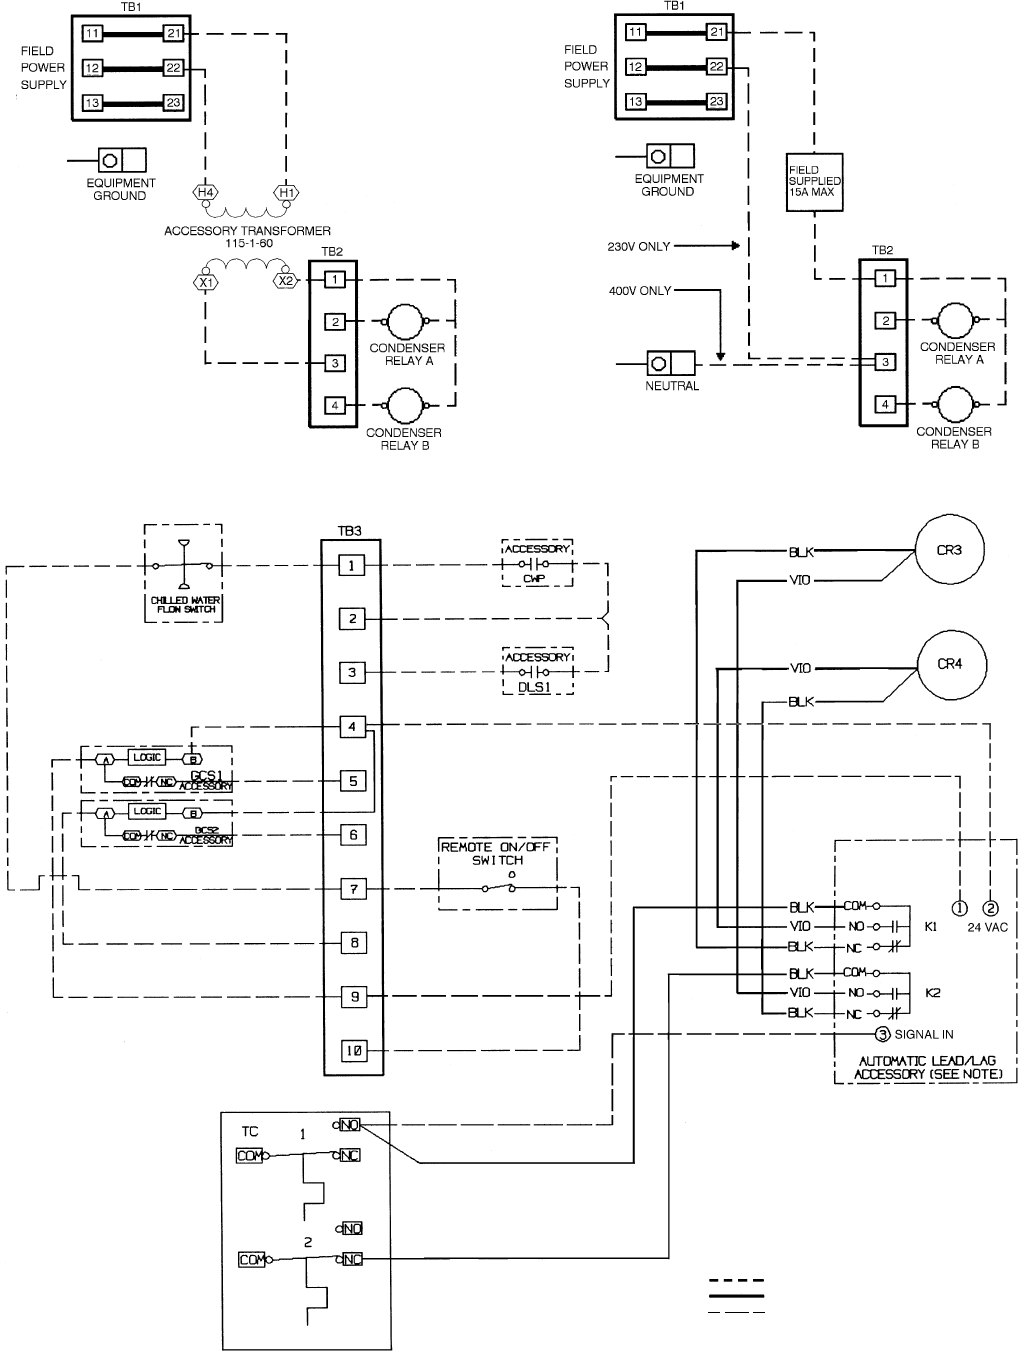 bg16 field wiring diagram field guide norfolk \u2022 wiring diagrams j  at reclaimingppi.co